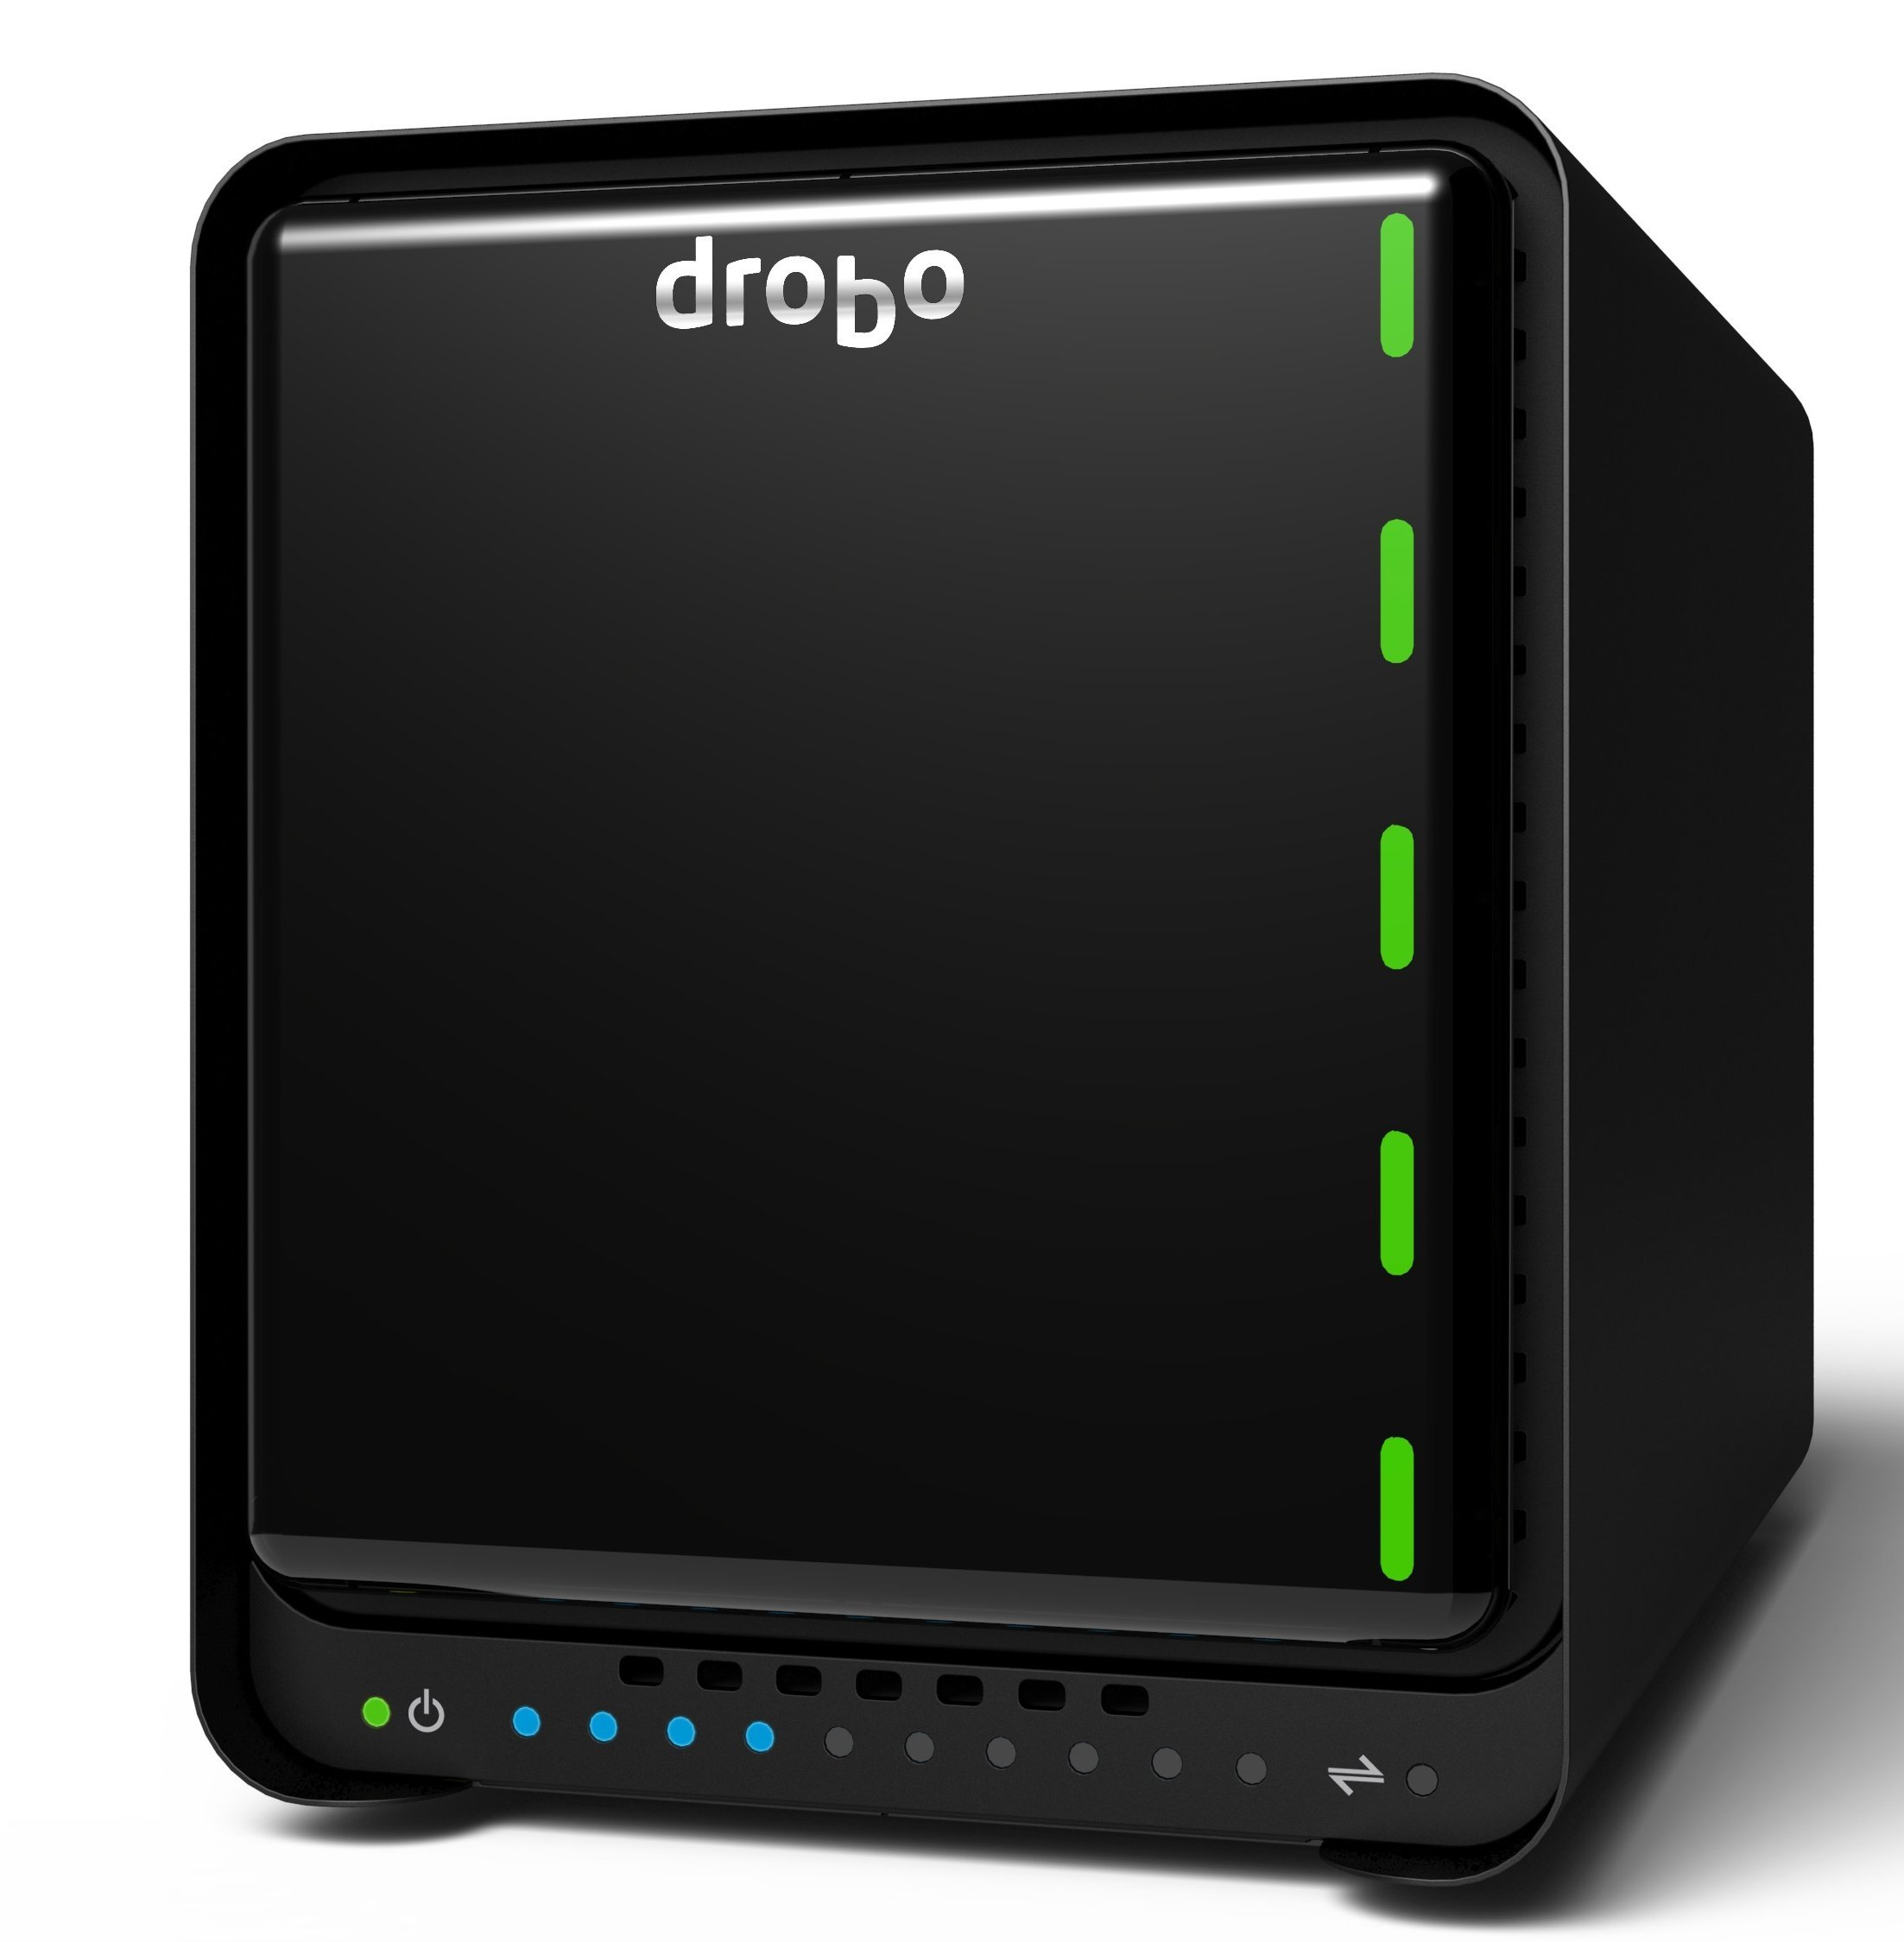 Drobo 5D3 5-Drive Direct Attached Storage (DAS) Array – Dual Thunderbolt 3 and USB 3.0 Type-C ports (DRDR6A21) by Drobo